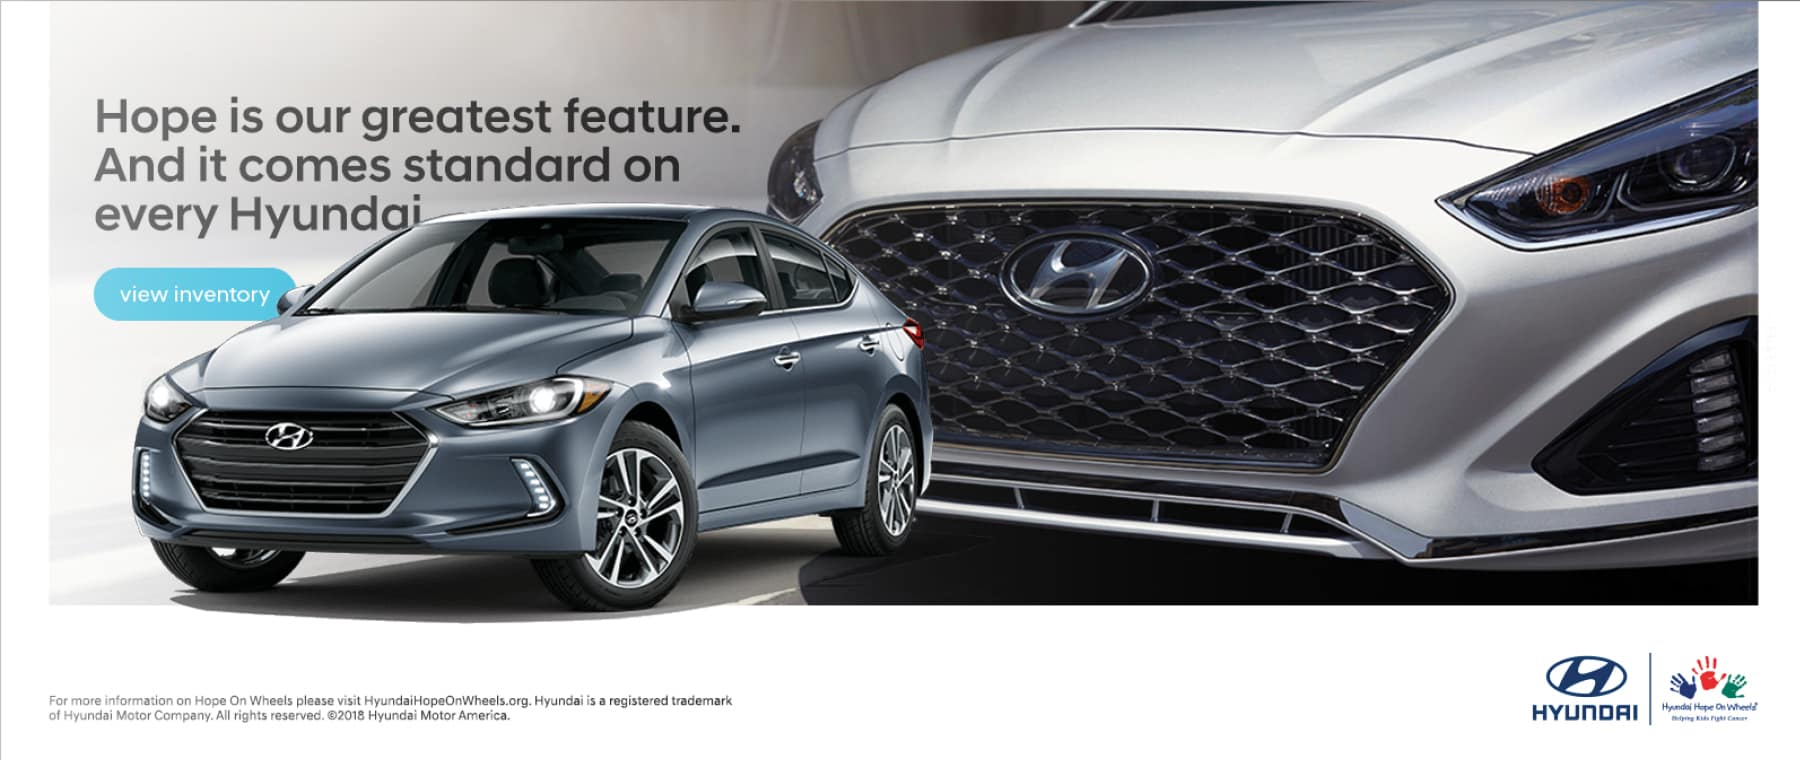 Joe Machens Hyundai | New & Used Hyundai Dealer in Columbia, MO